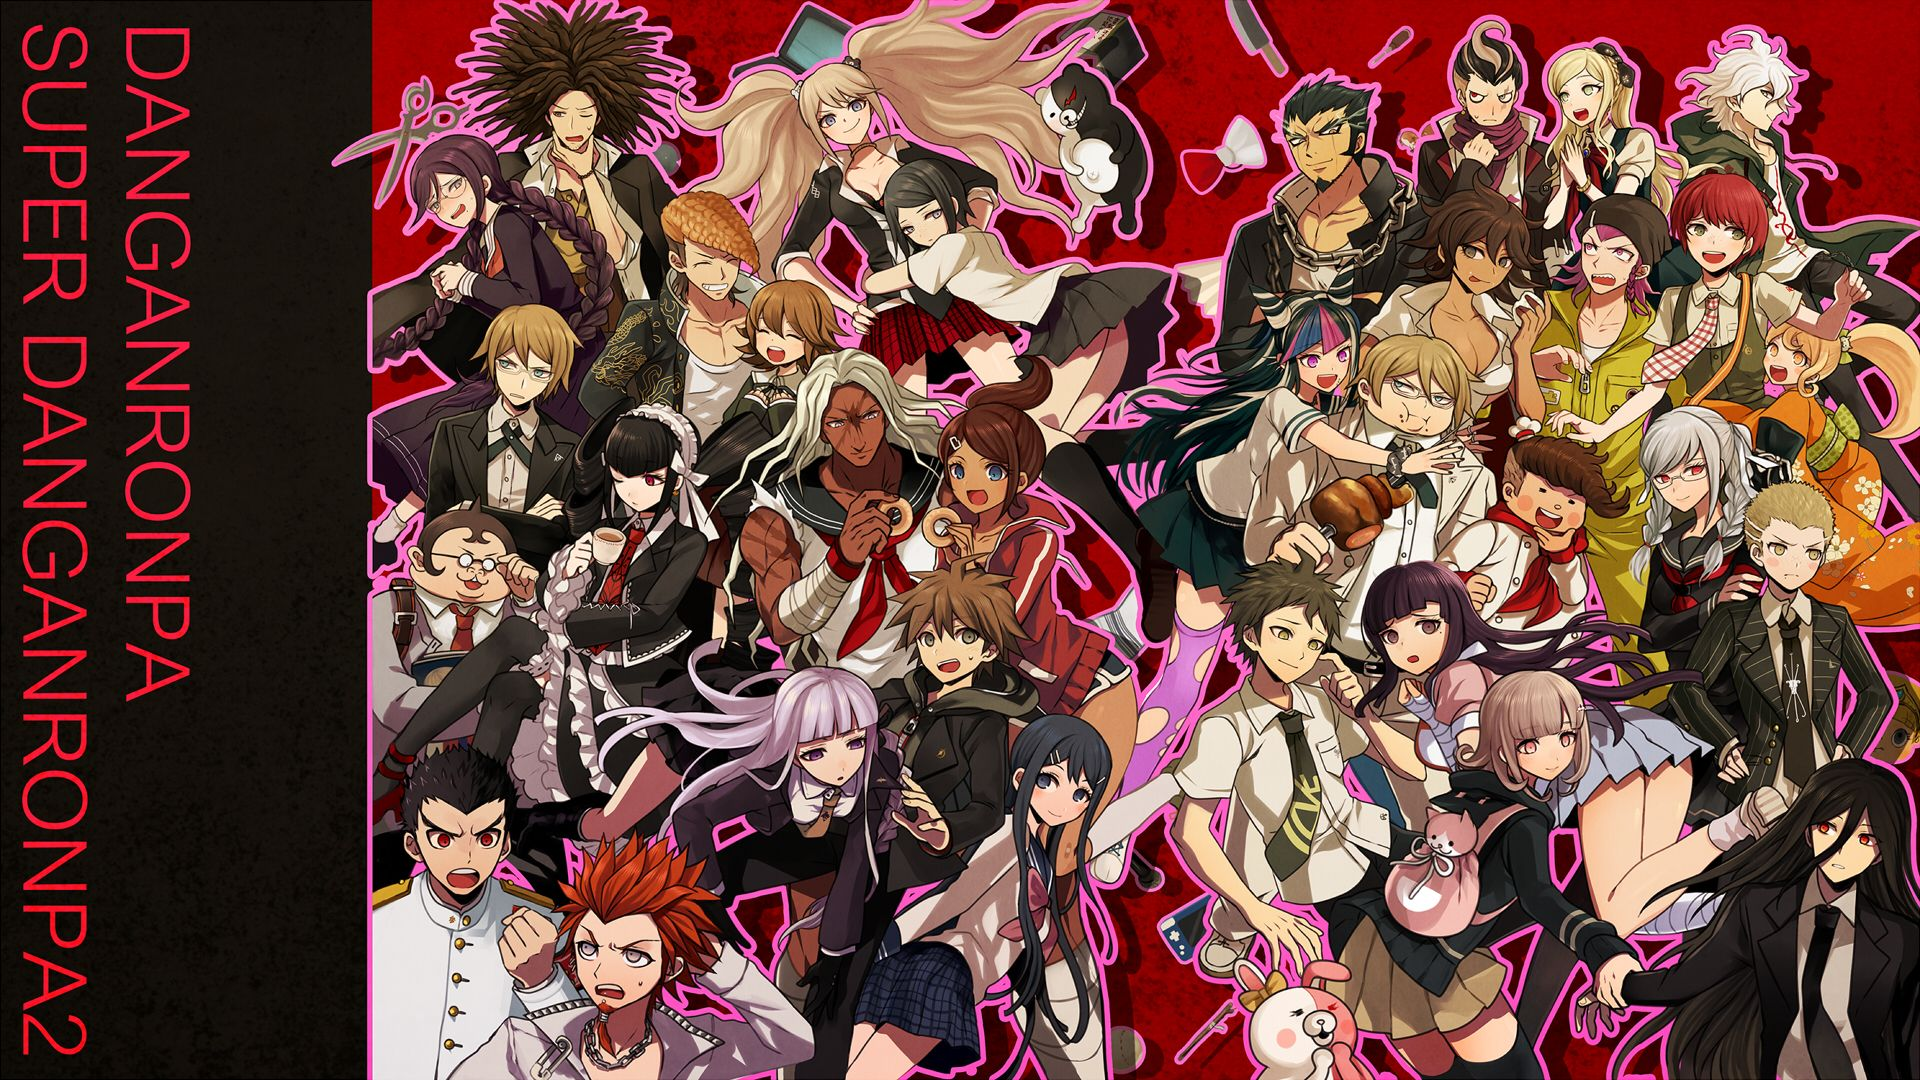 Danganronpa Desktop Wallpapers Wallpaper Cave